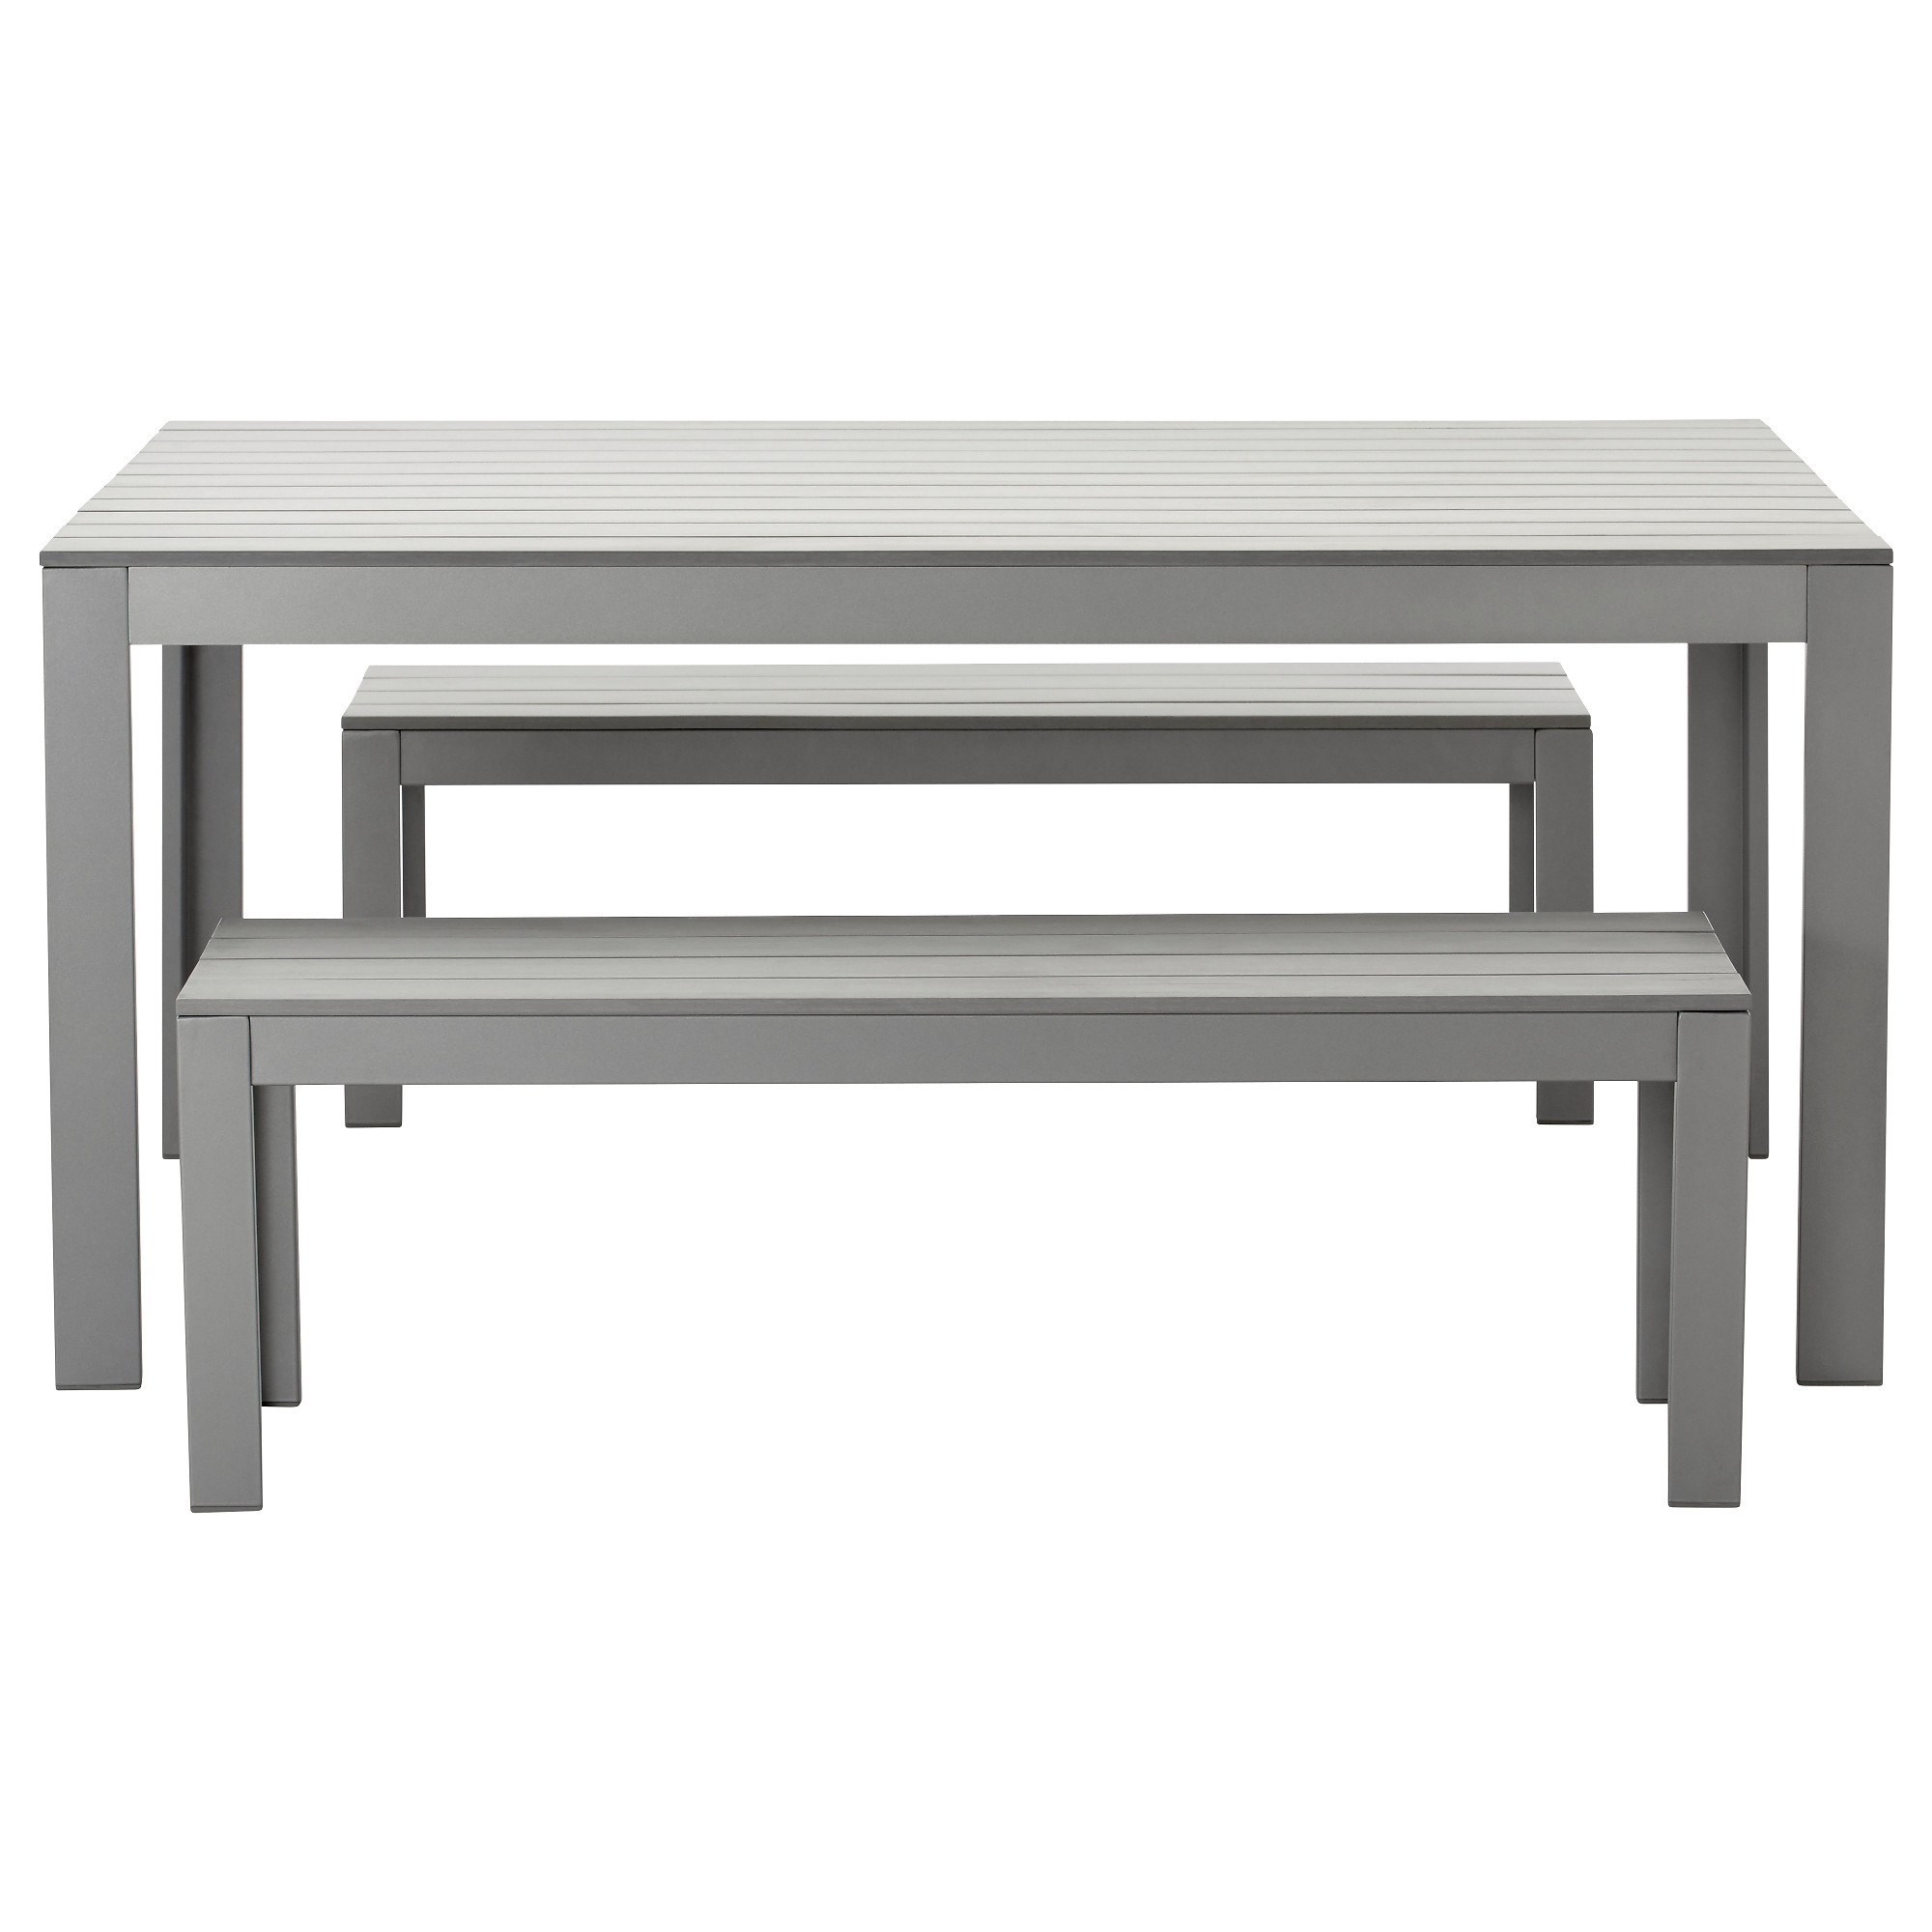 FALSTER Table+2 Benches, Outdoor   Gray   IKEA